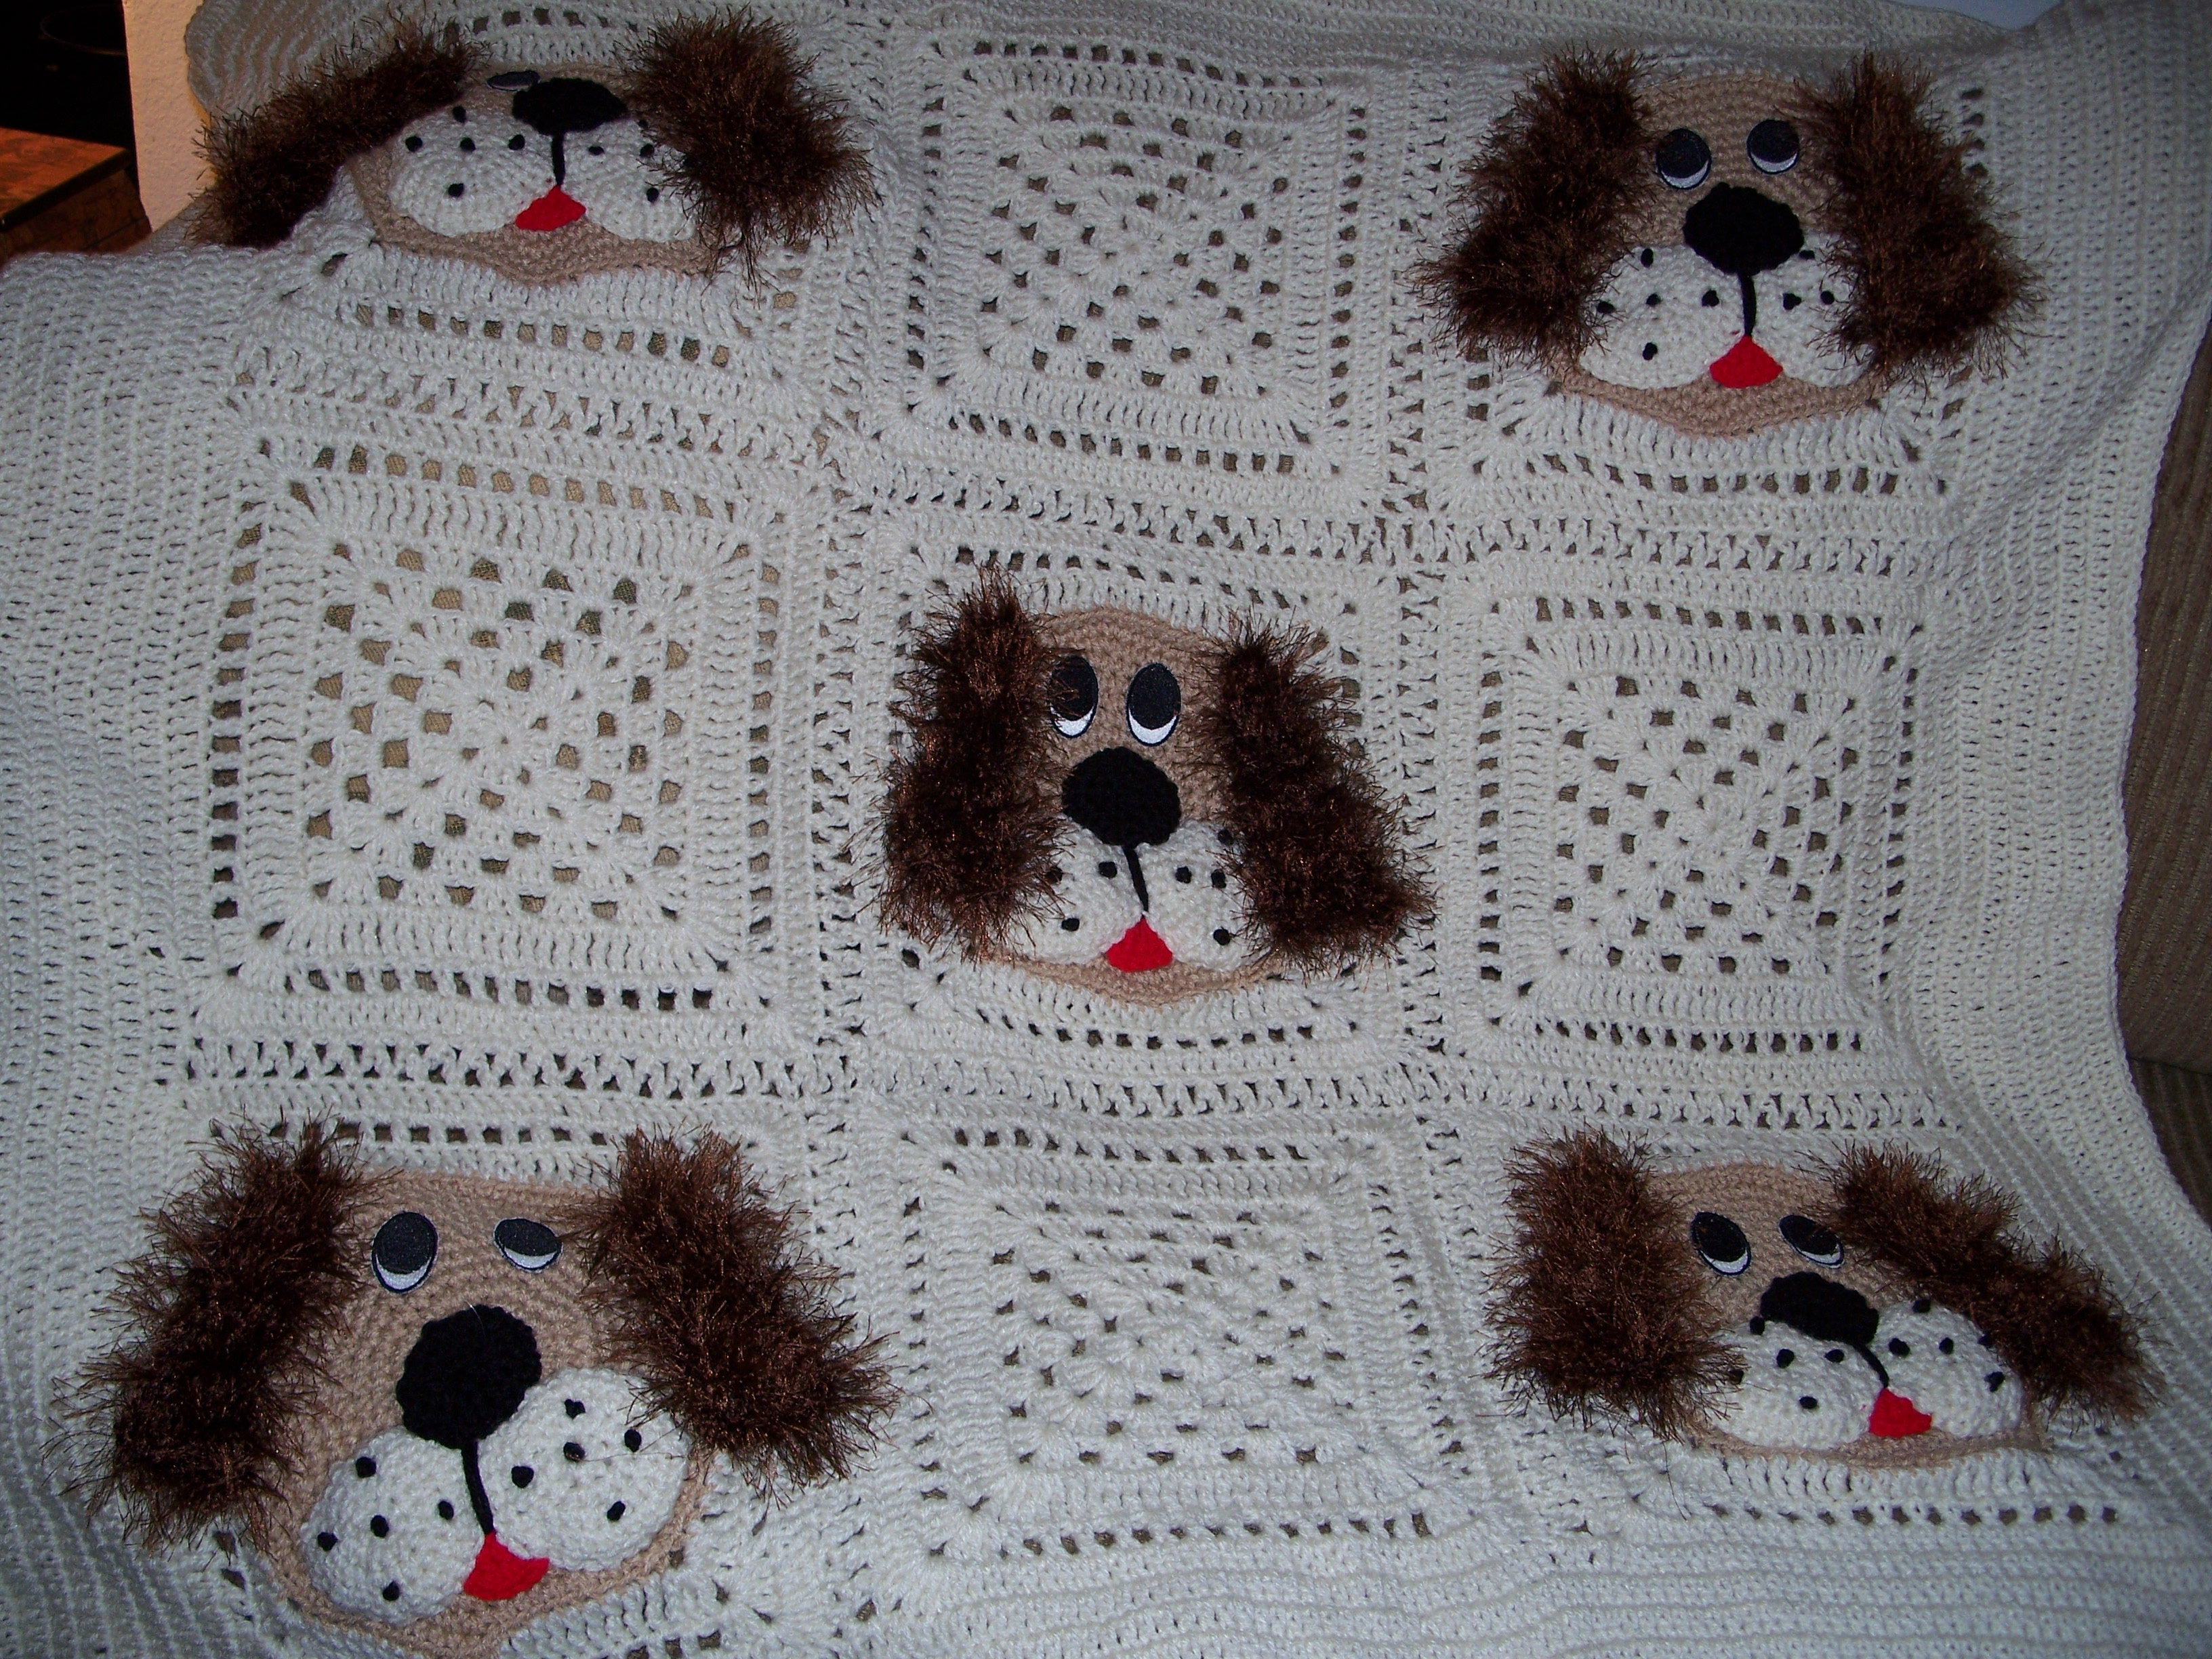 Free Knitting Pattern Dog Blanket : BABY DUCK CROCHET AFGHAN PATTERN Crochet Patterns